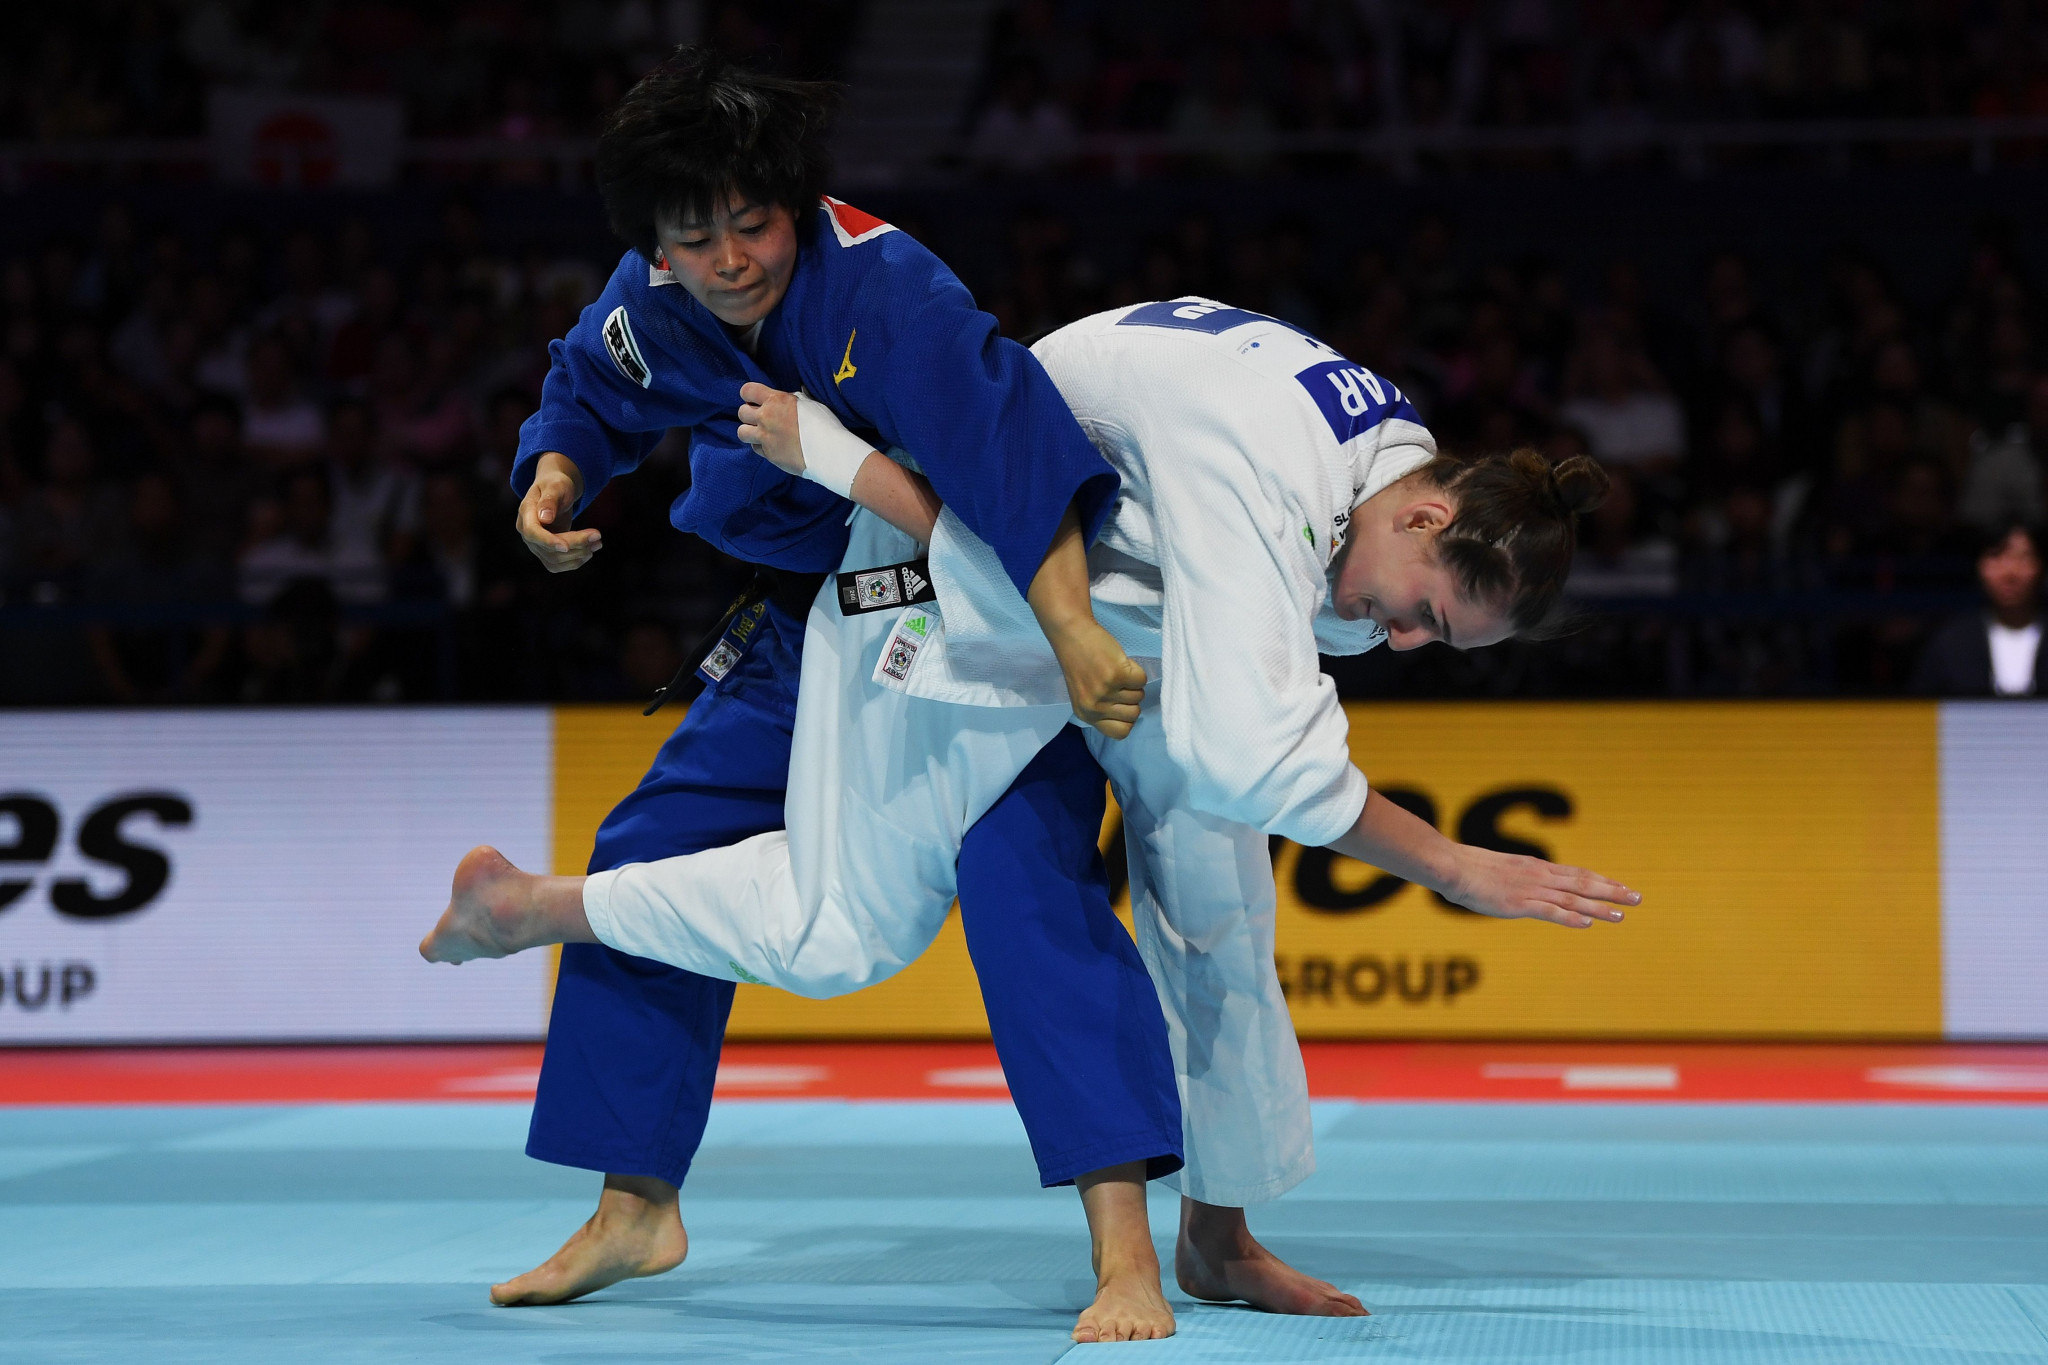 Hamada, in blue, was not able to defend her world title in front of a home crowd in Tokyo ©Getty Images